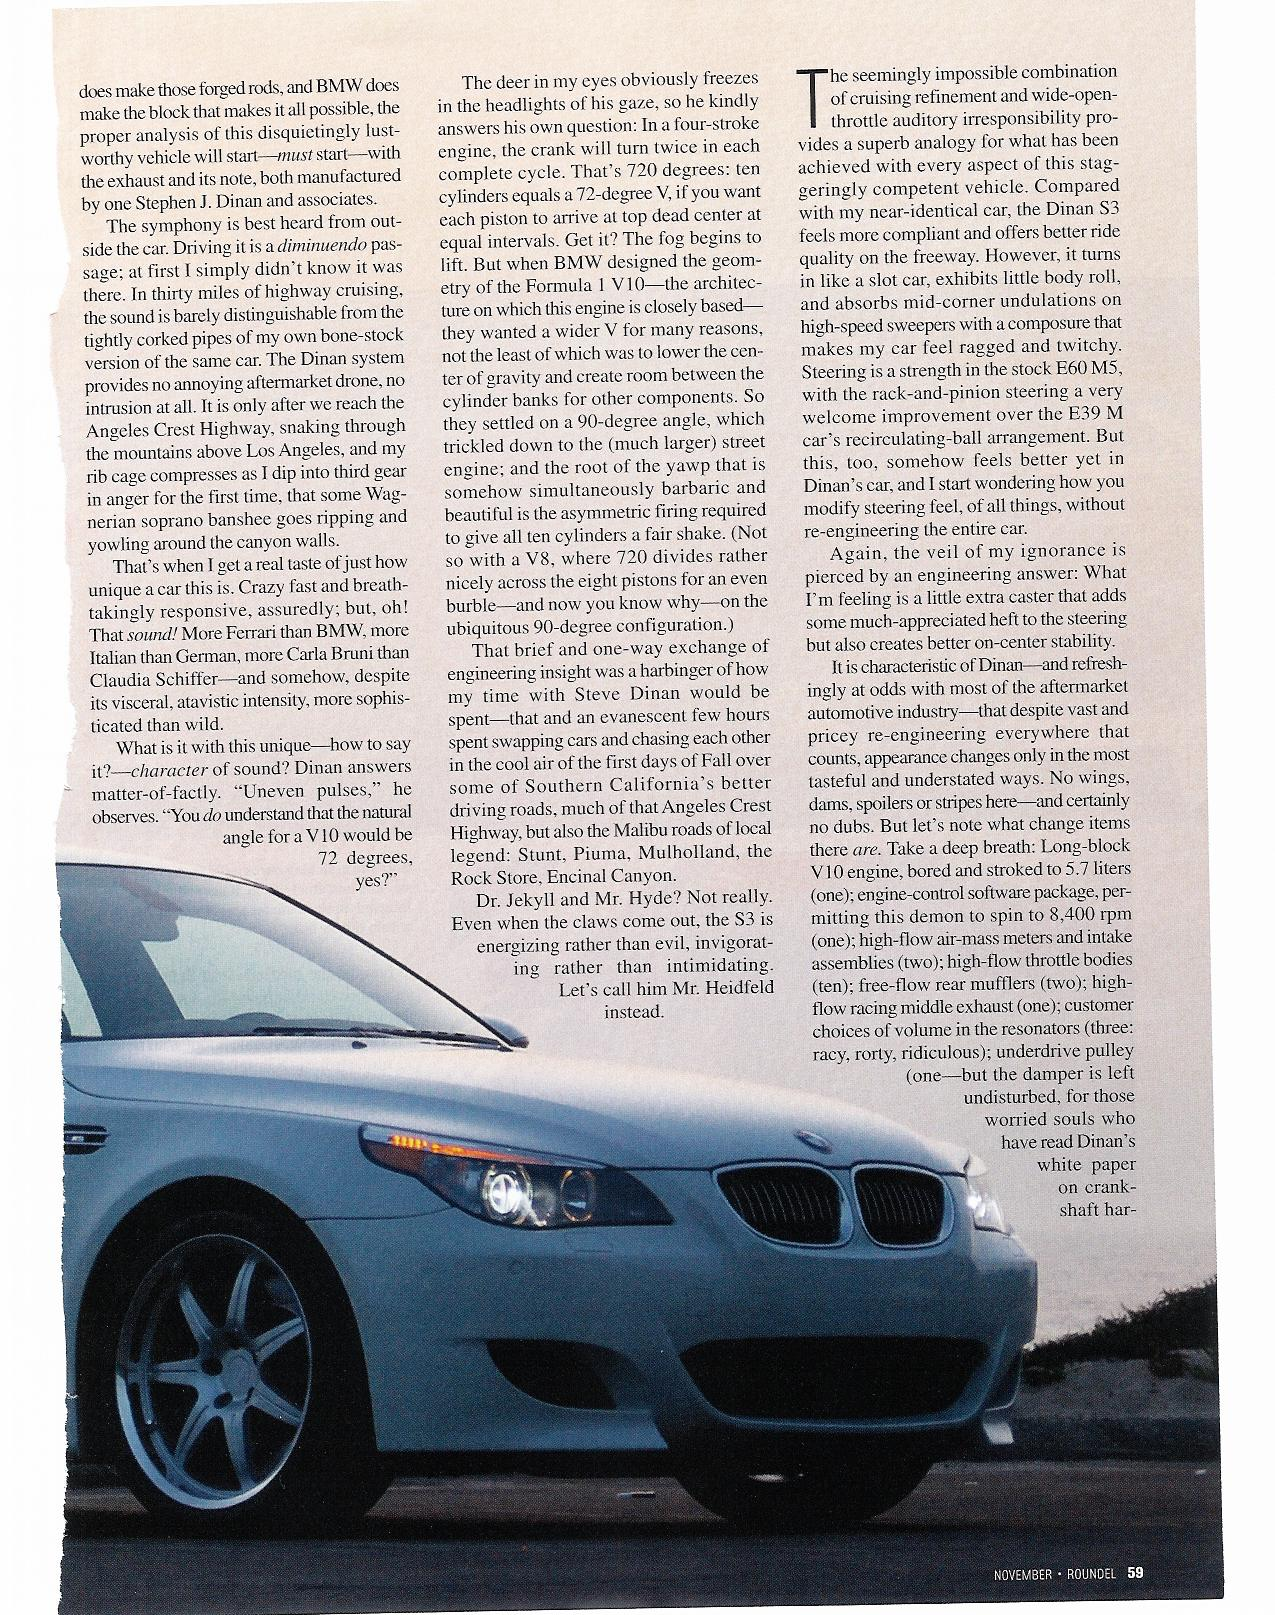 Stock E60 M5 owner evaluates Dinan S3 (Roundel Article)-roundel-article-dinan-e60-m5-s3-002.jpg